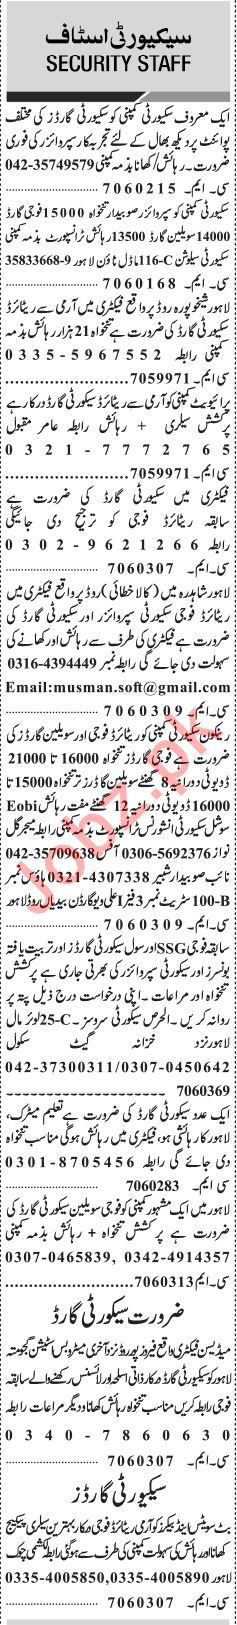 Jang Sunday Classified Ads 2nd Feb 2019 for Security Staff